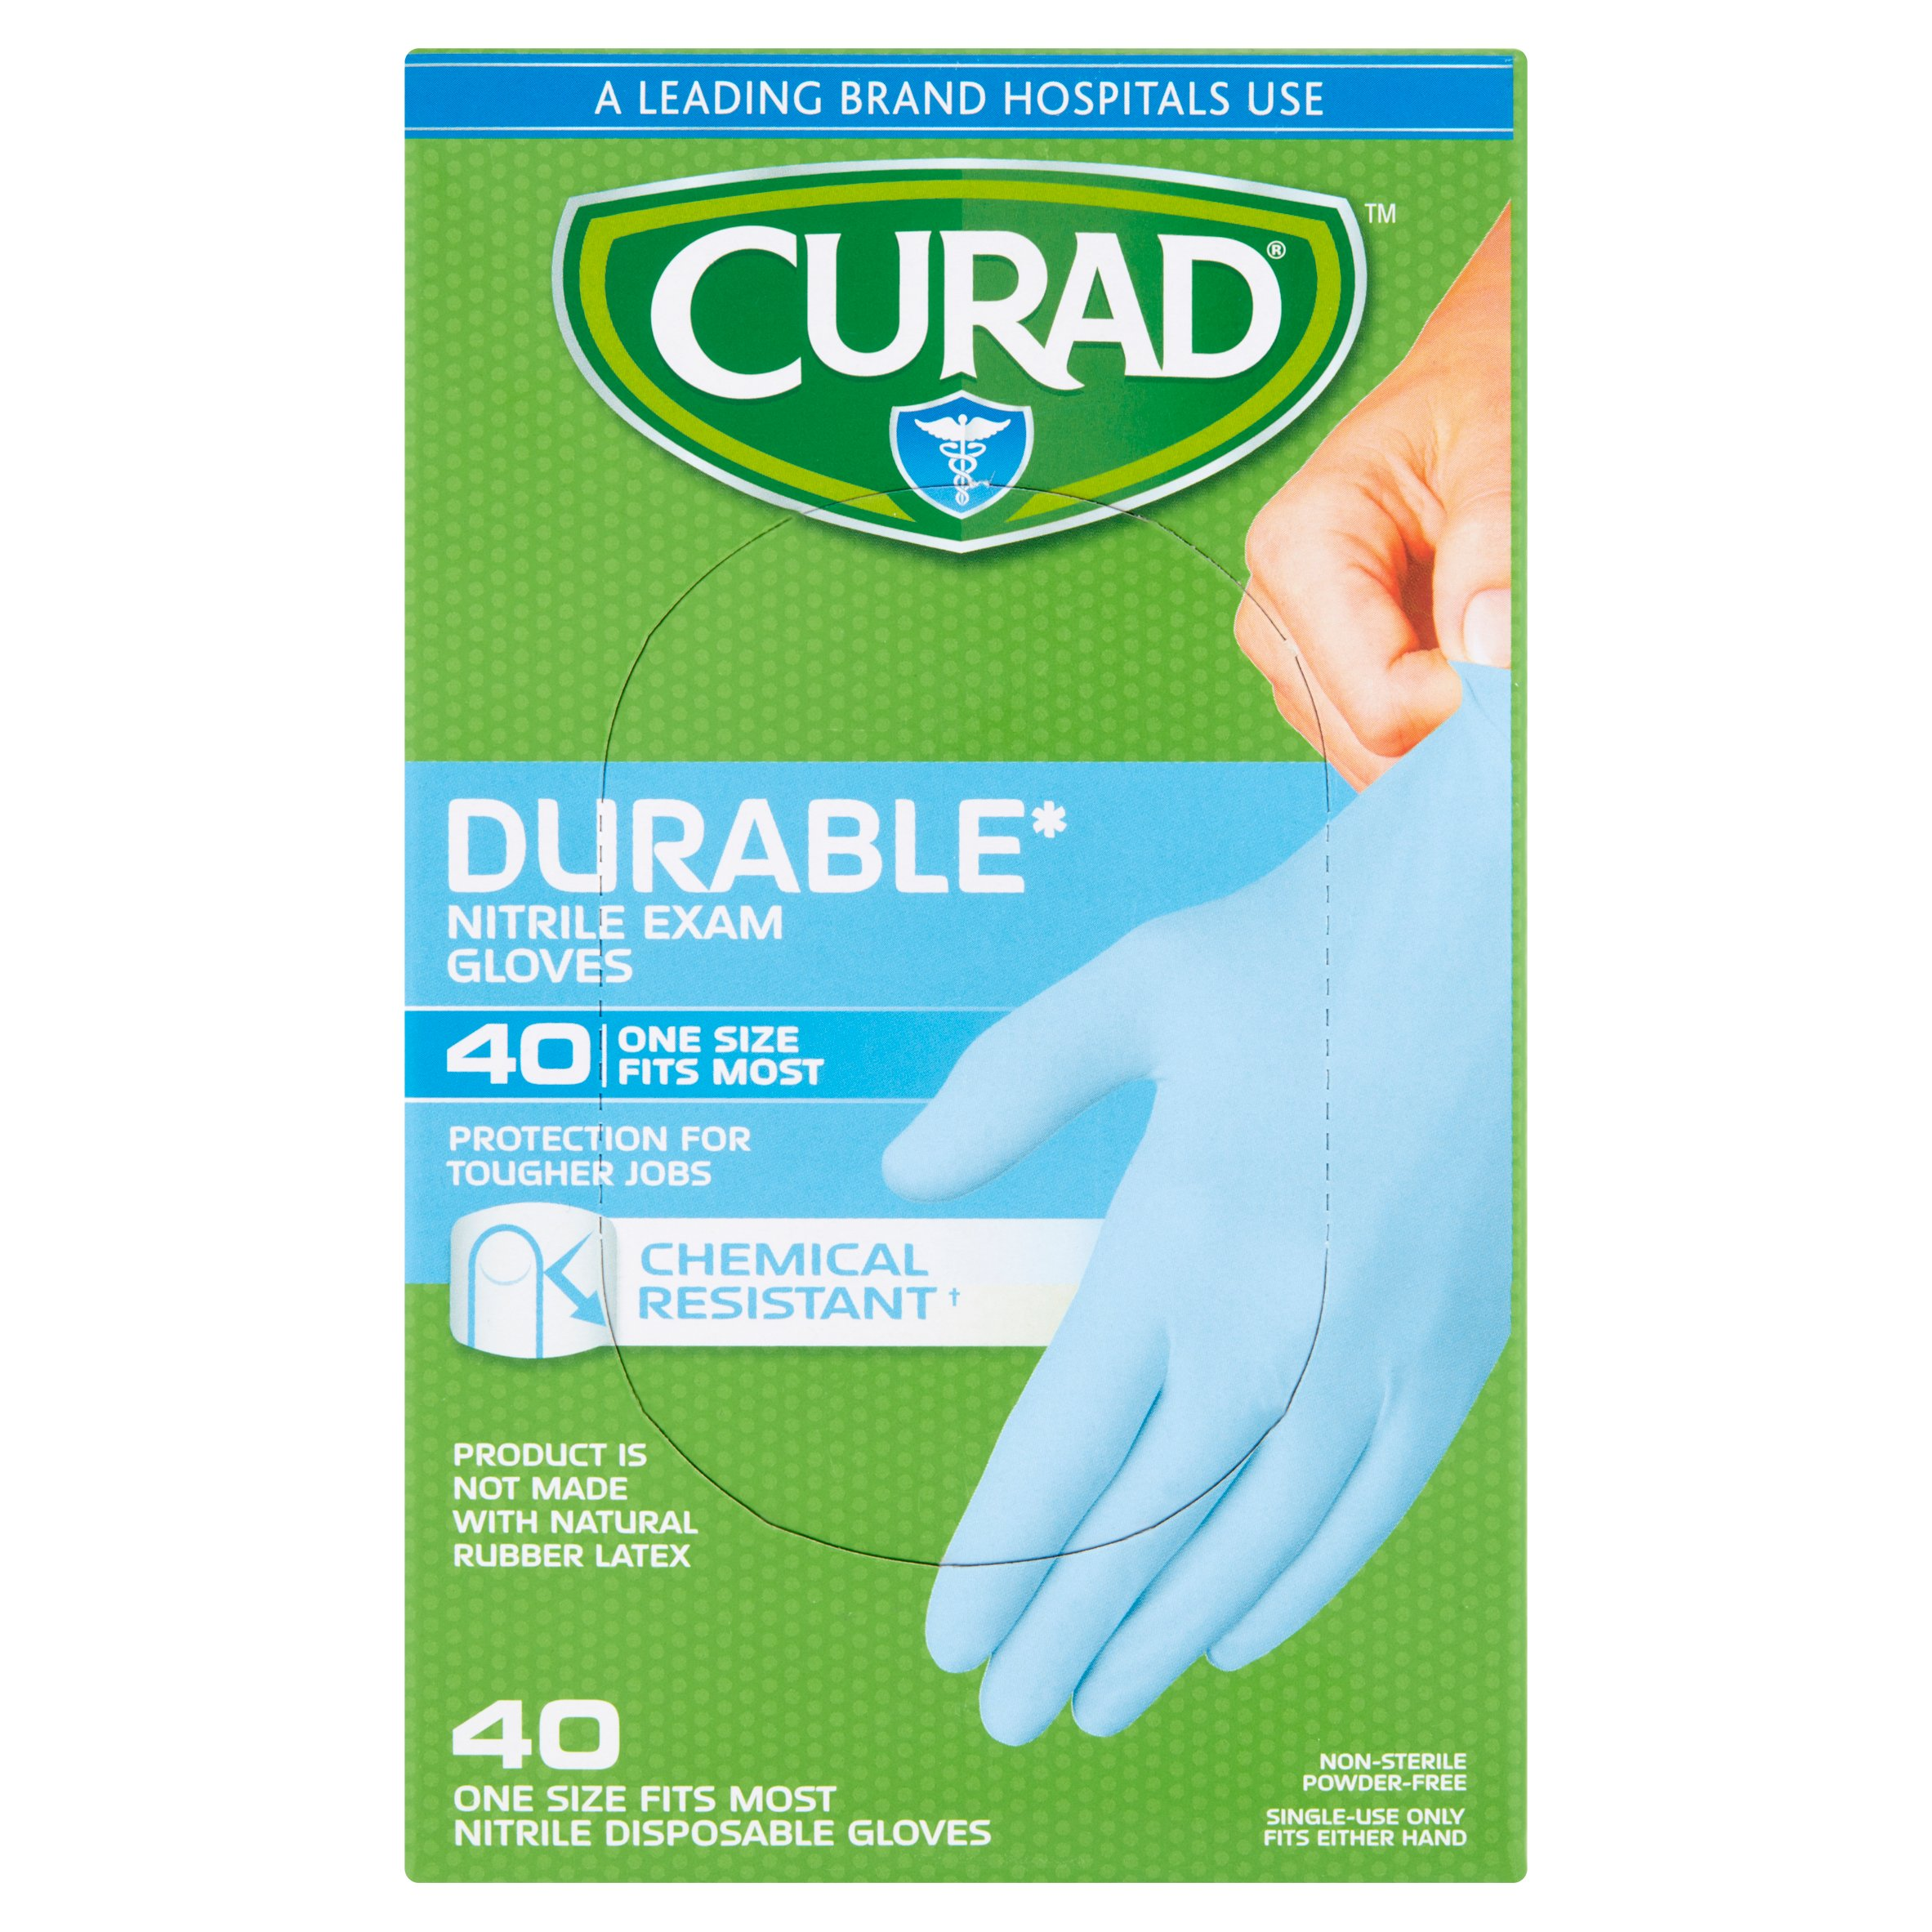 Curad Nitrile Disposable Exam Gloves OSFM, 40 count